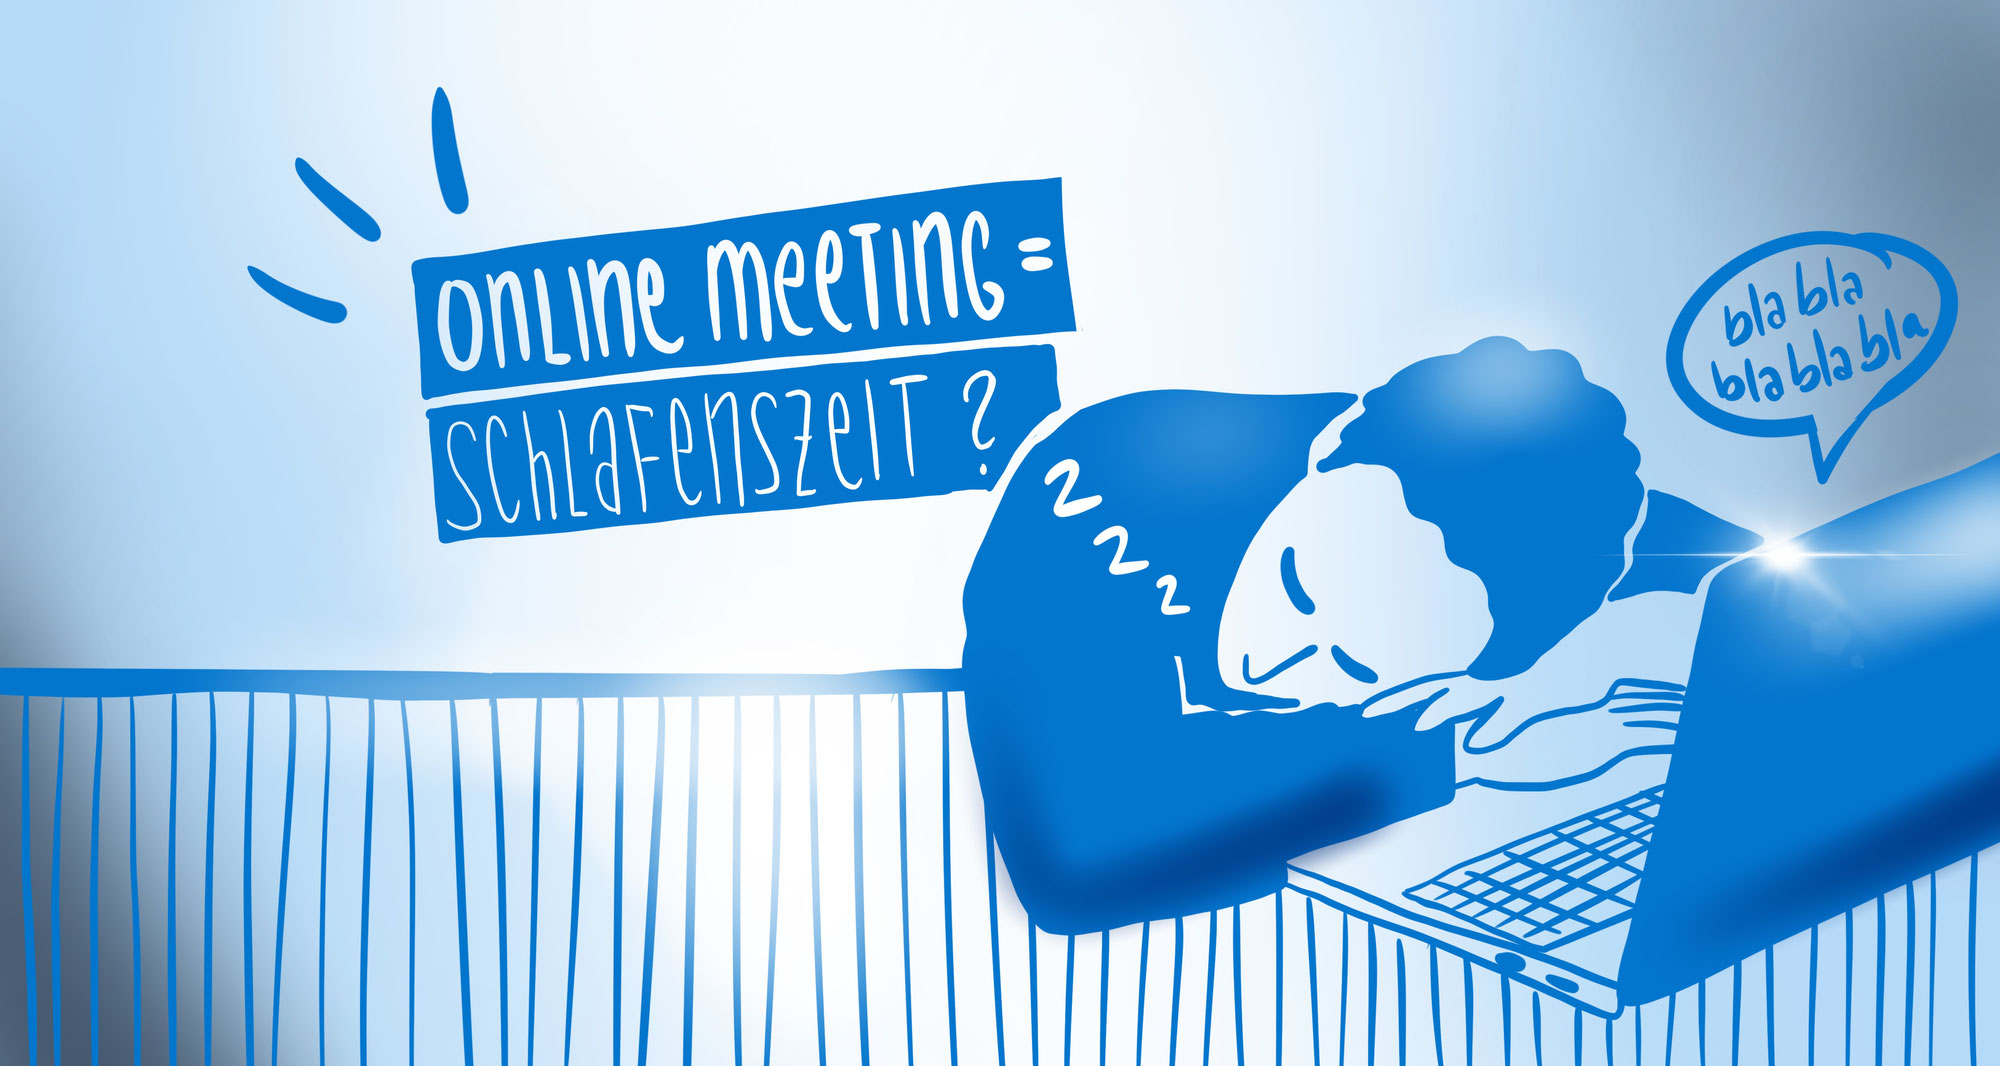 HALLO WACH! Visualisierungen im Online Meeting.